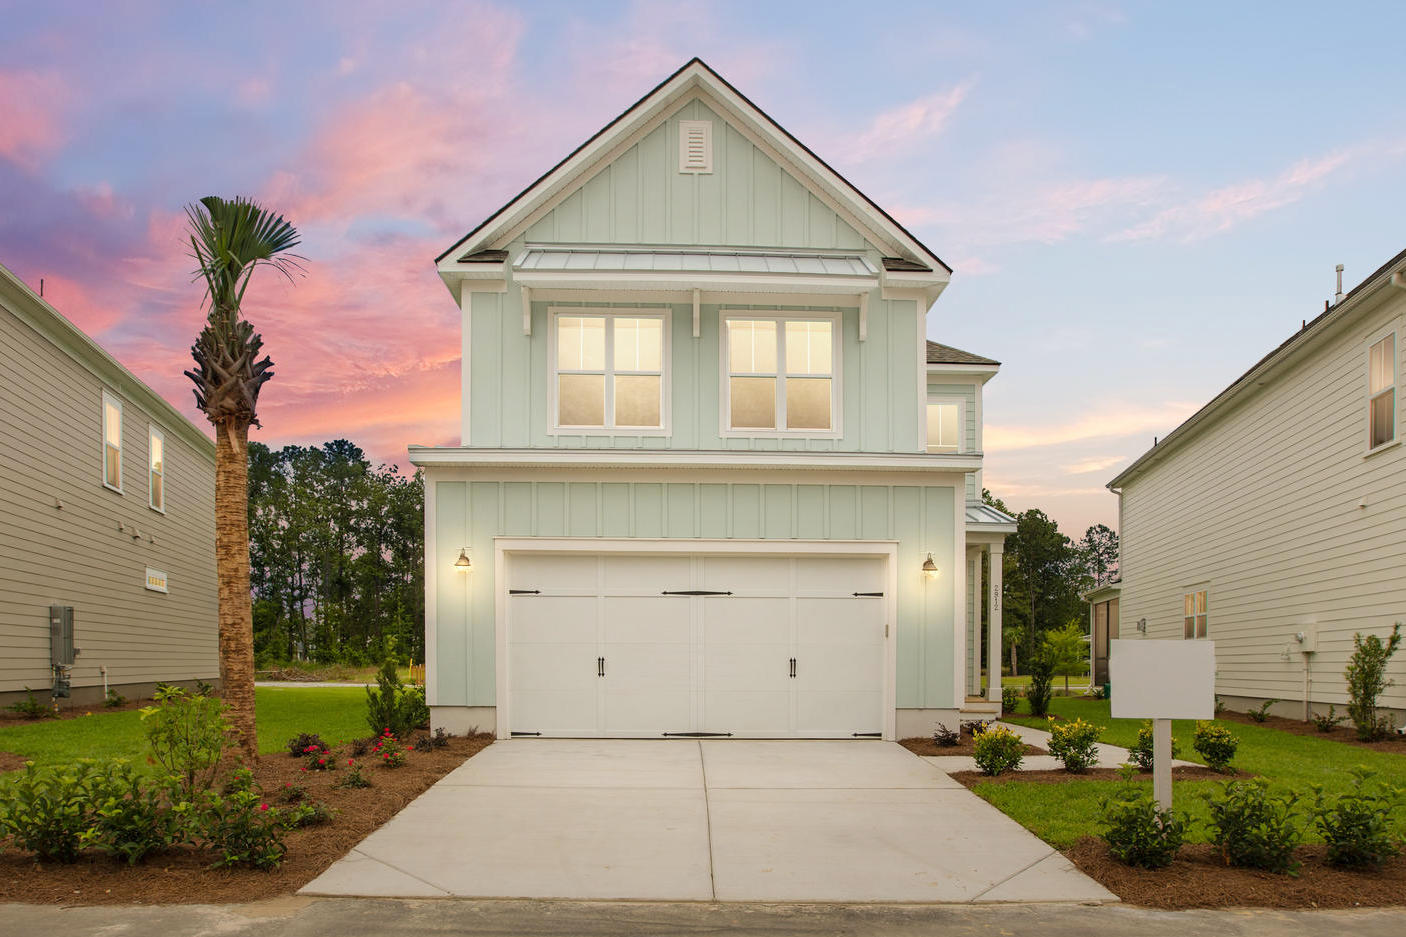 Dunes West Homes For Sale - 2906 Clearwater, Mount Pleasant, SC - 22